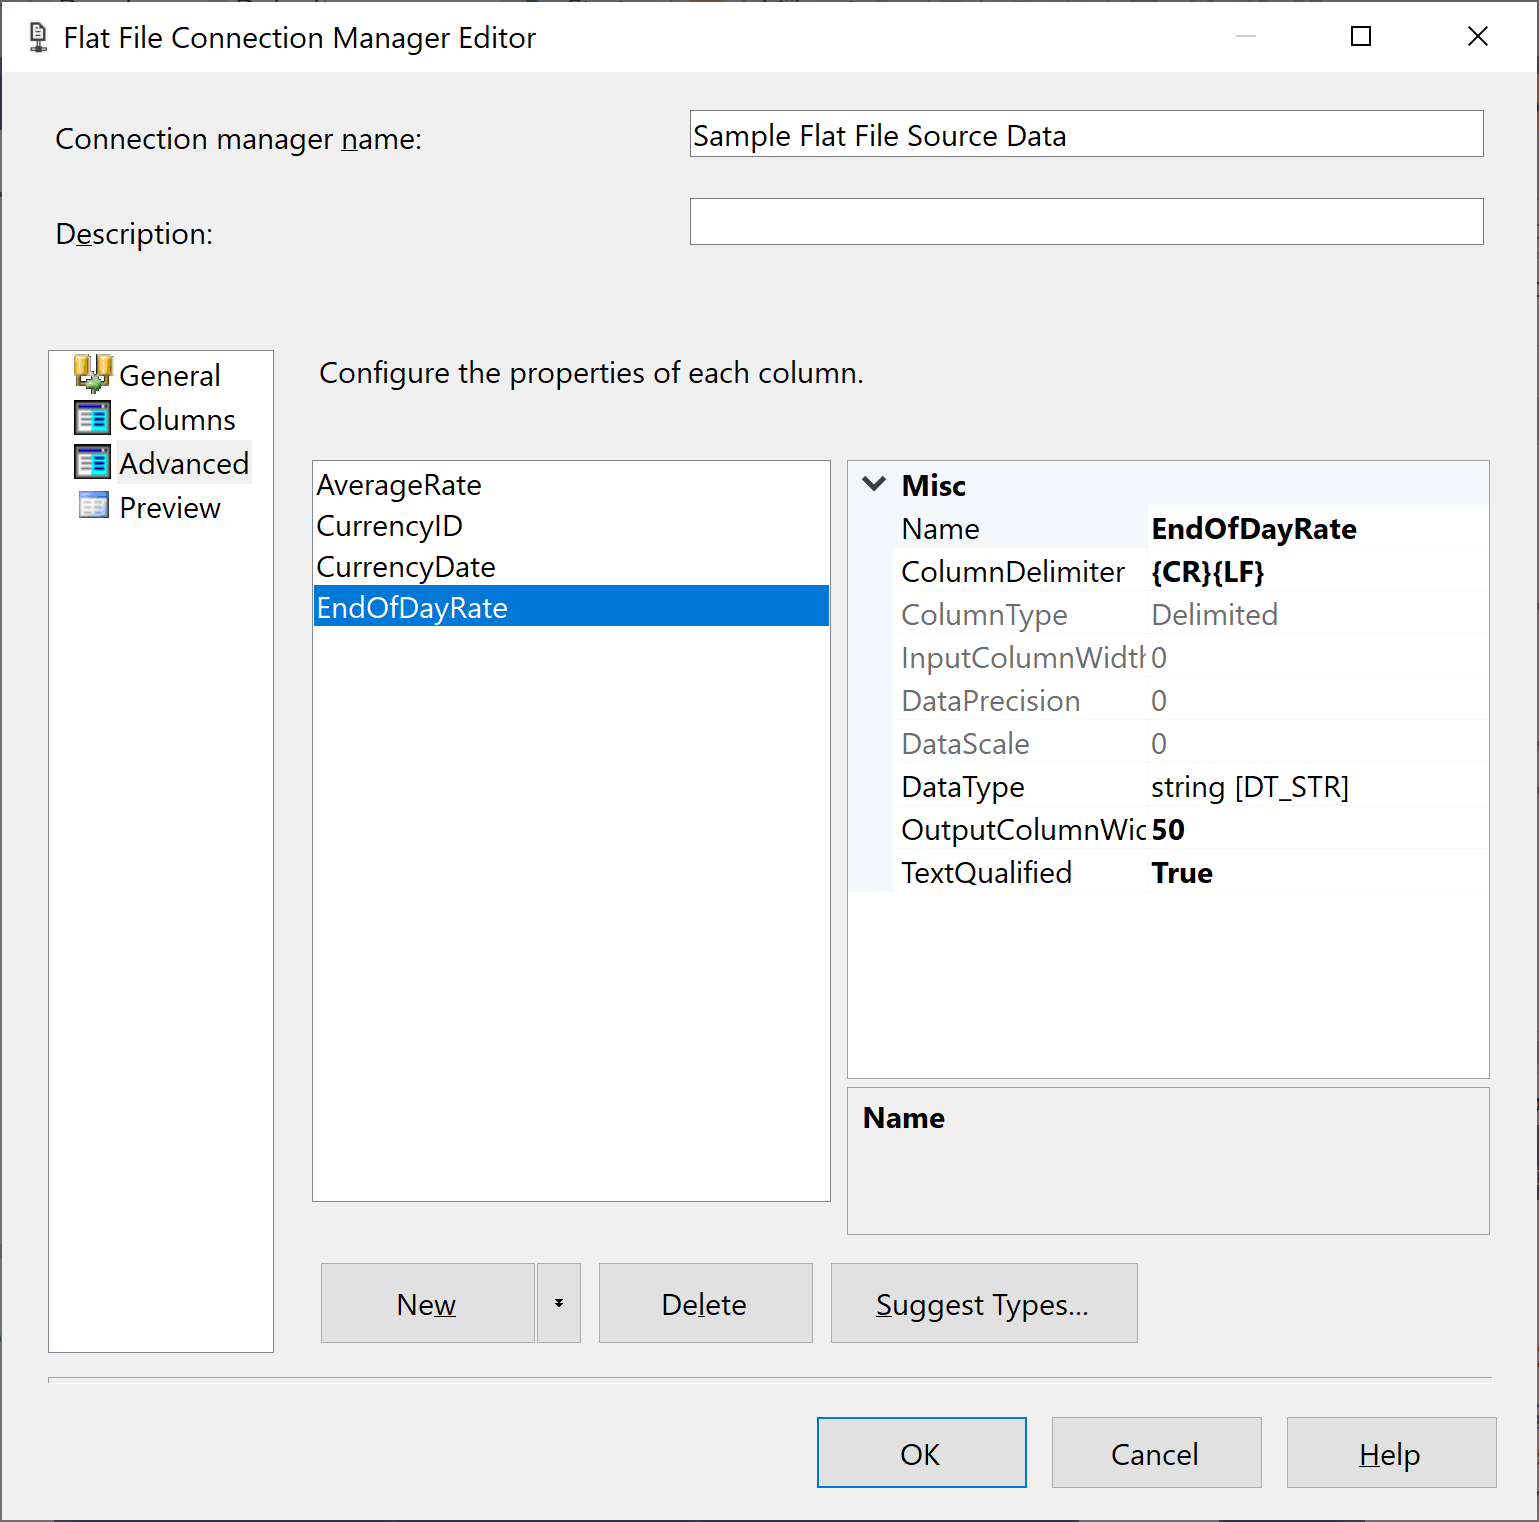 Flat File Connection Manager Editor - Advanced tab column names changed